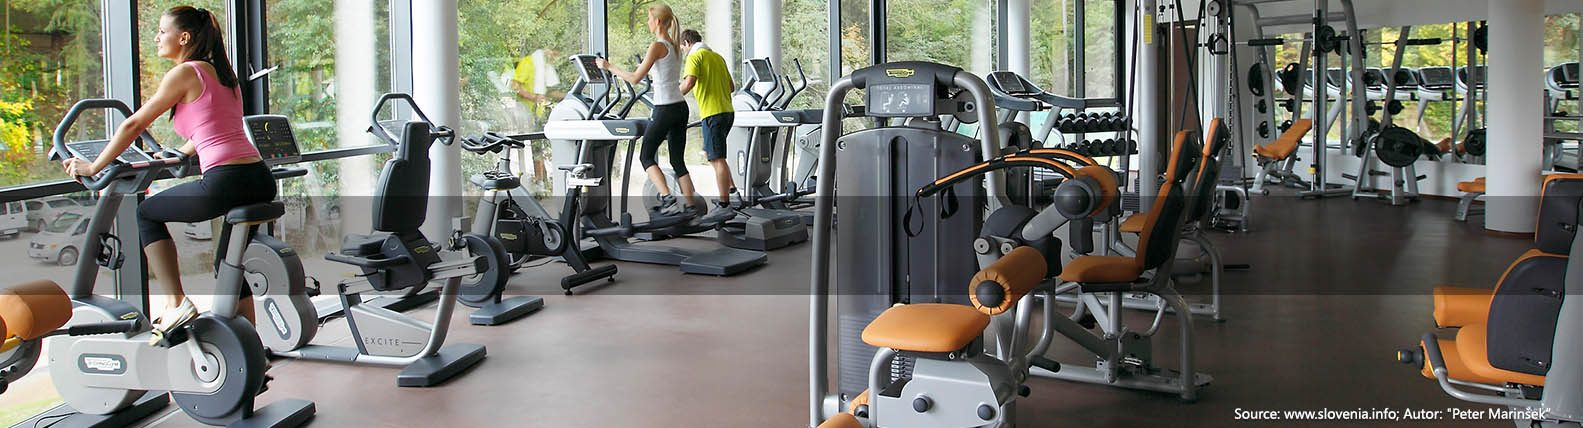 Sport & Fitness Centers